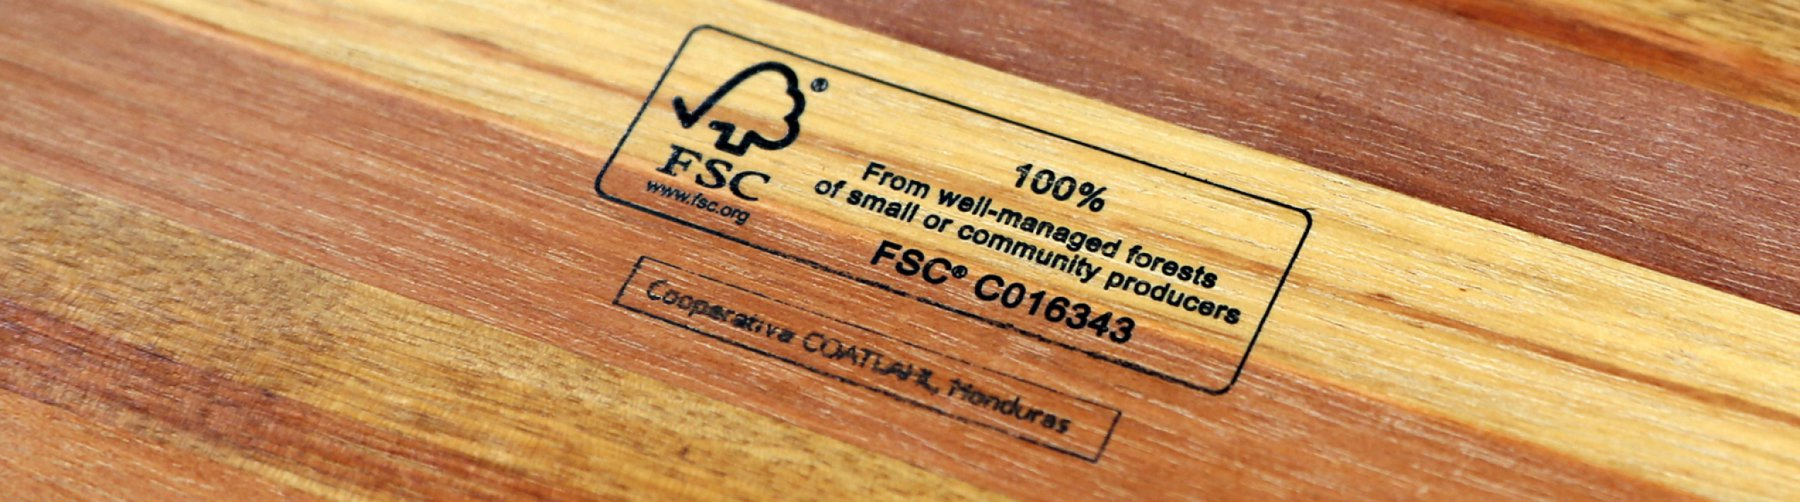 Becoming fsc certified fsc international why should i become fsc certified demonstrating your responsible forest supply chain management xflitez Image collections